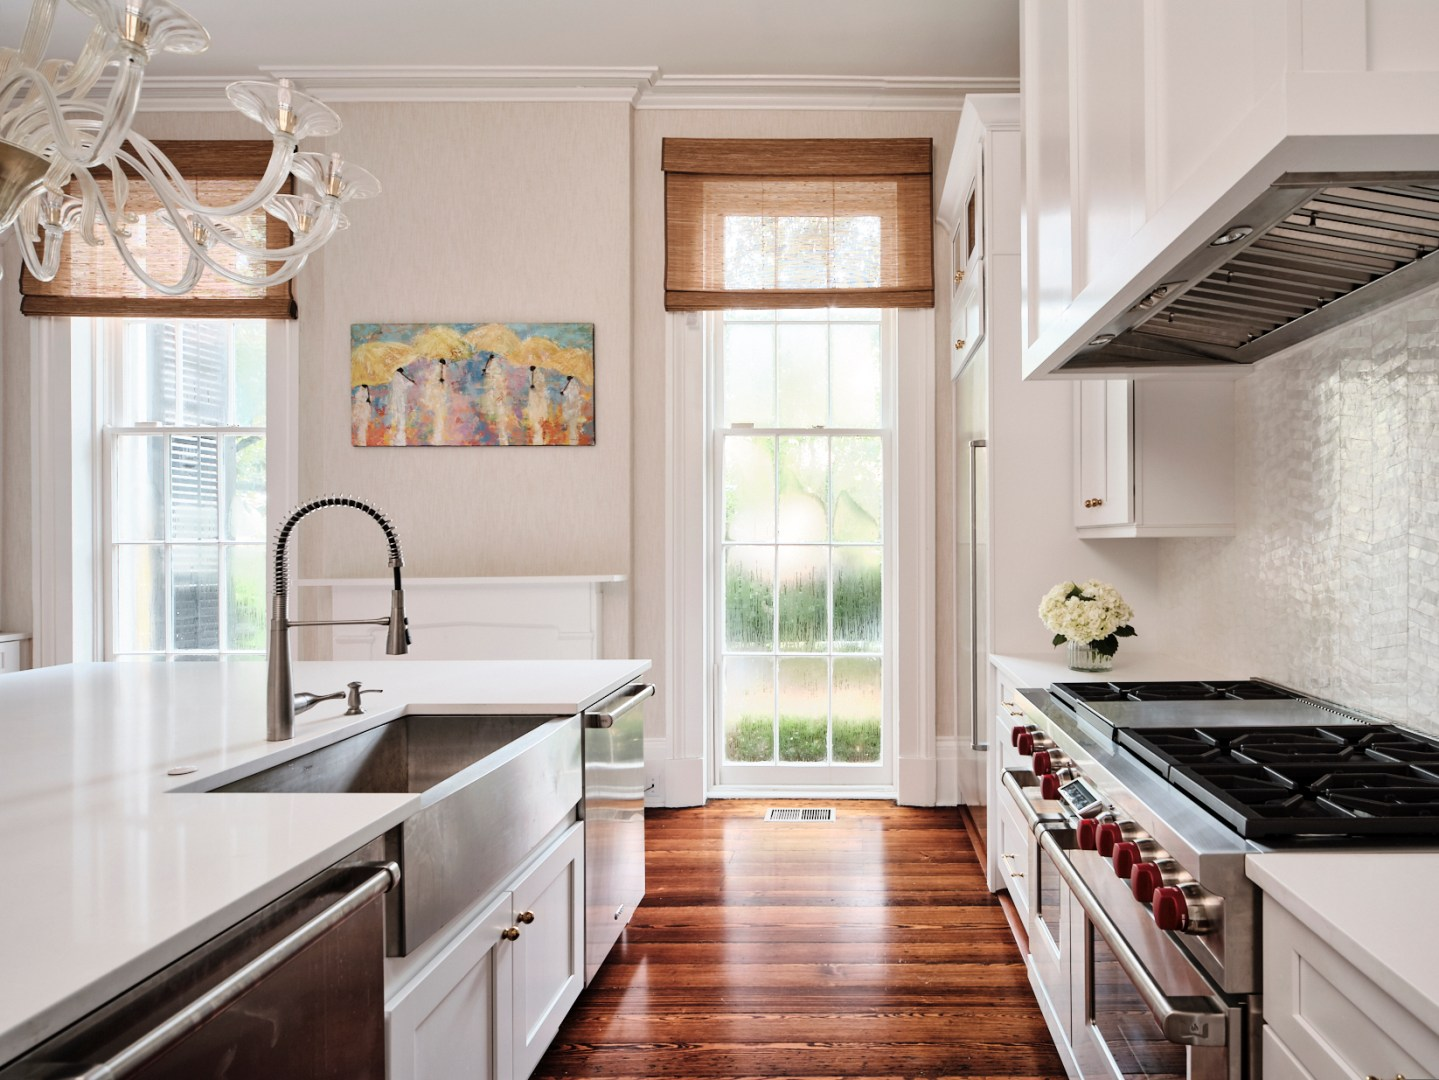 St_Charles_Finals_Web_Res-11 Tips To Consider When Remodeling a Kitchen from New Orleans Designer, April Vogt